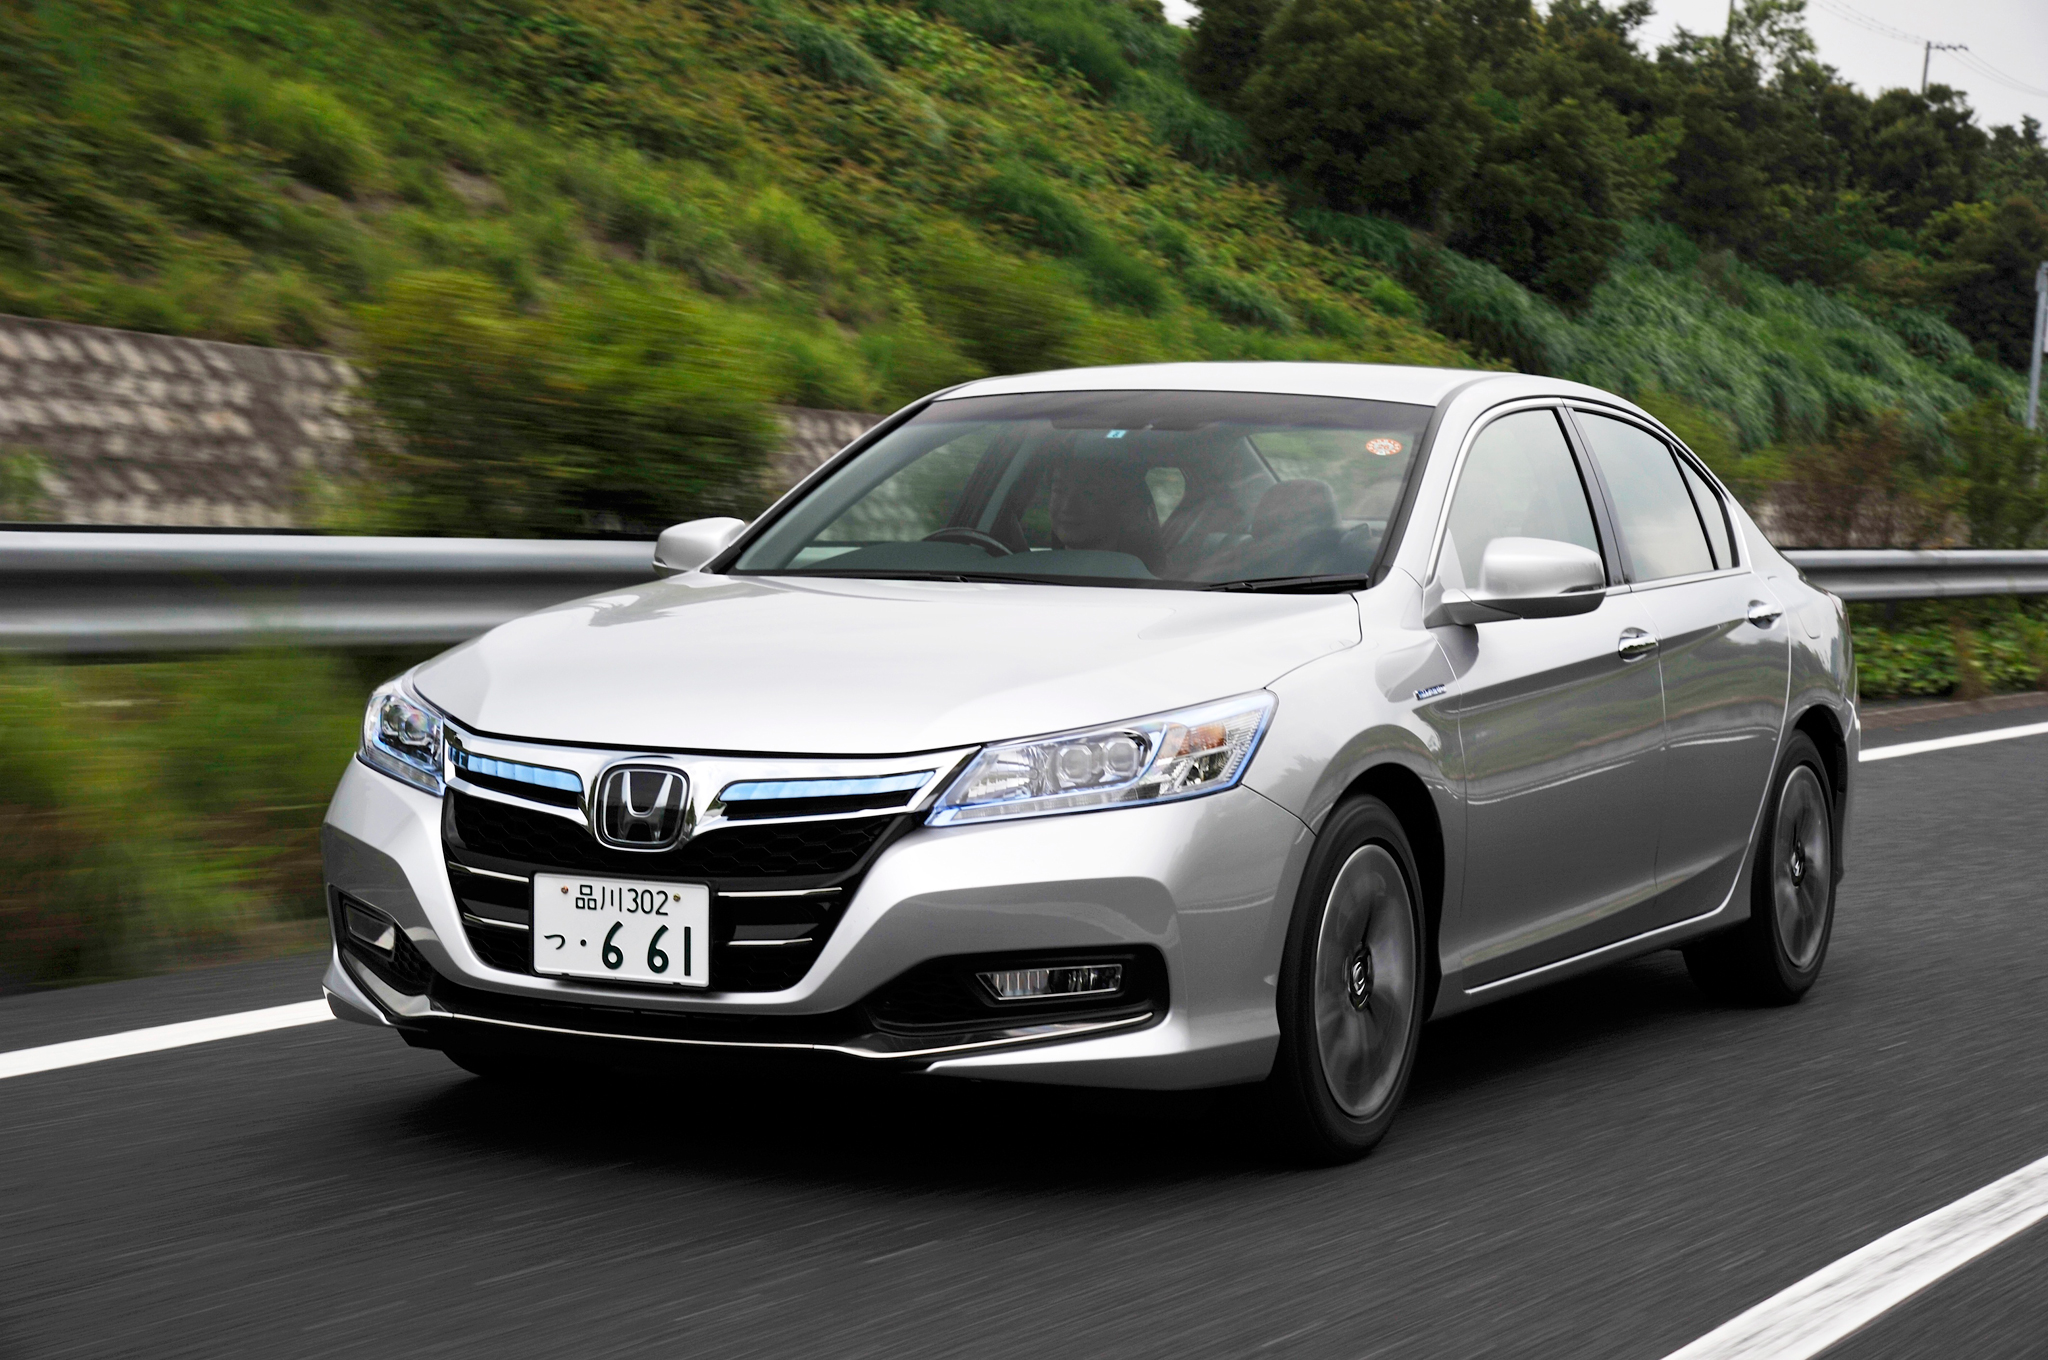 2014 Honda Accord Hybrid Japan Spec First Drive